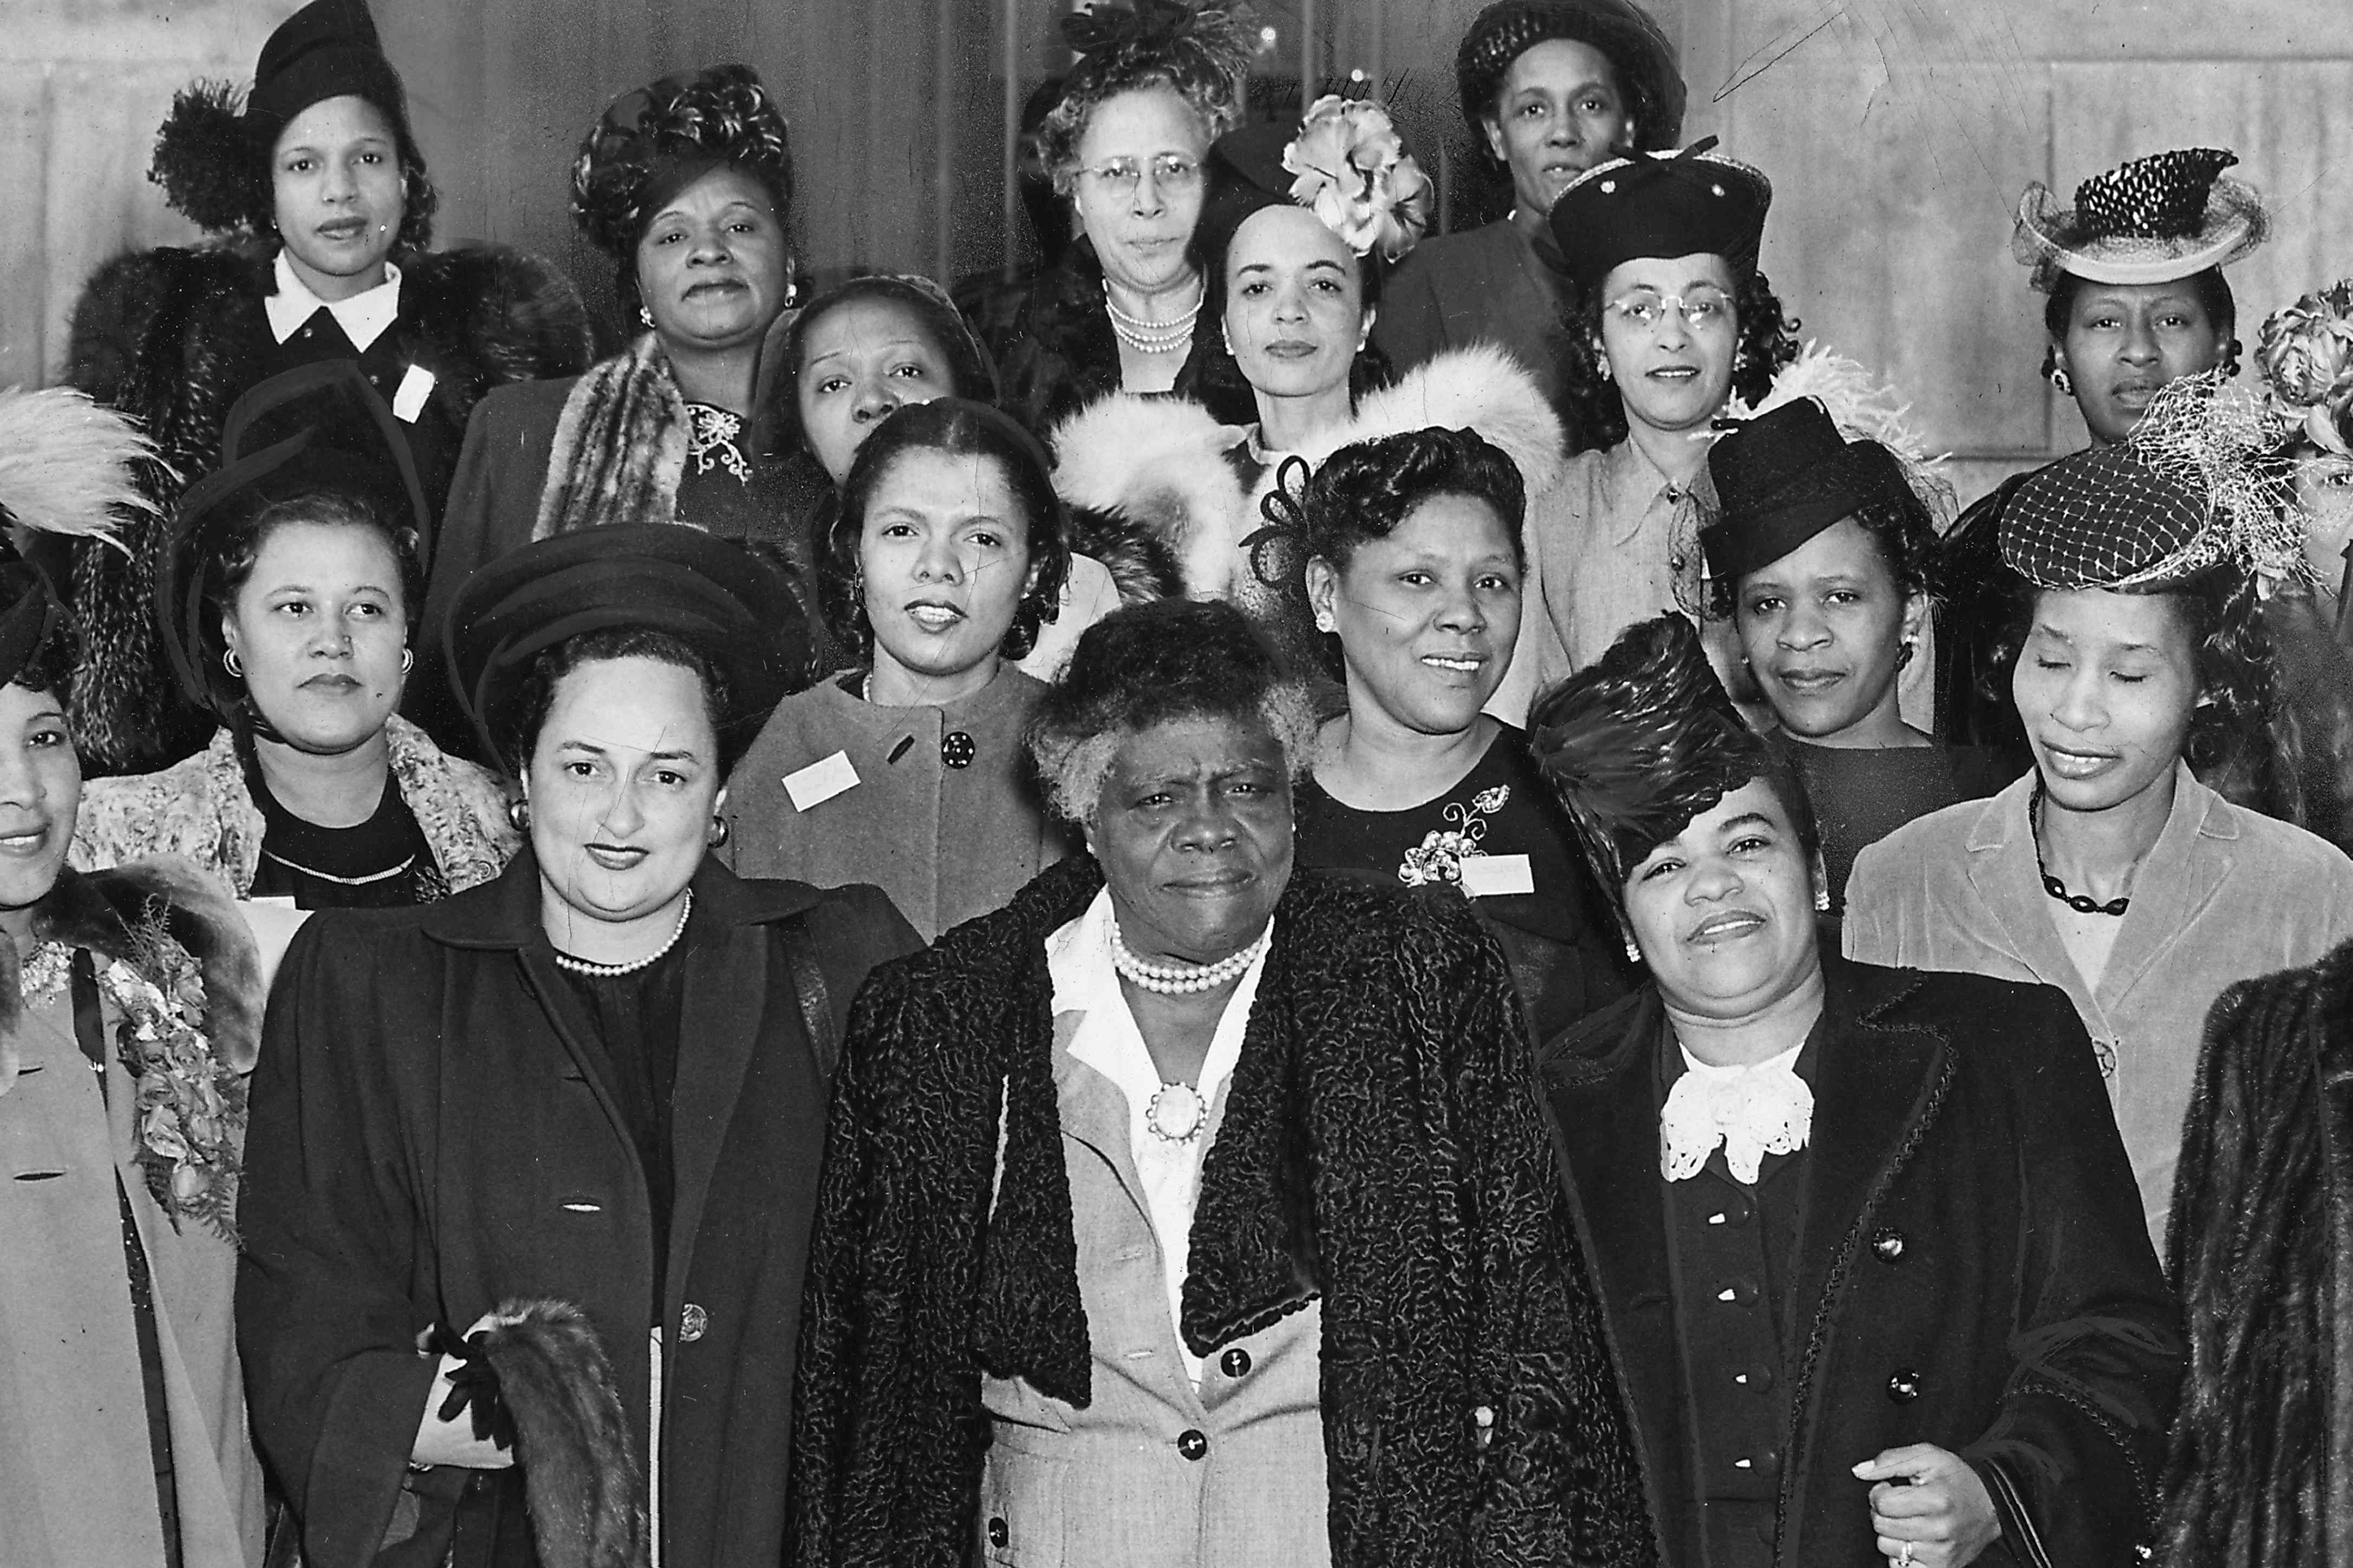 Members of the National Council of Negro Women including founder Dr. Mary McLeod Bethune